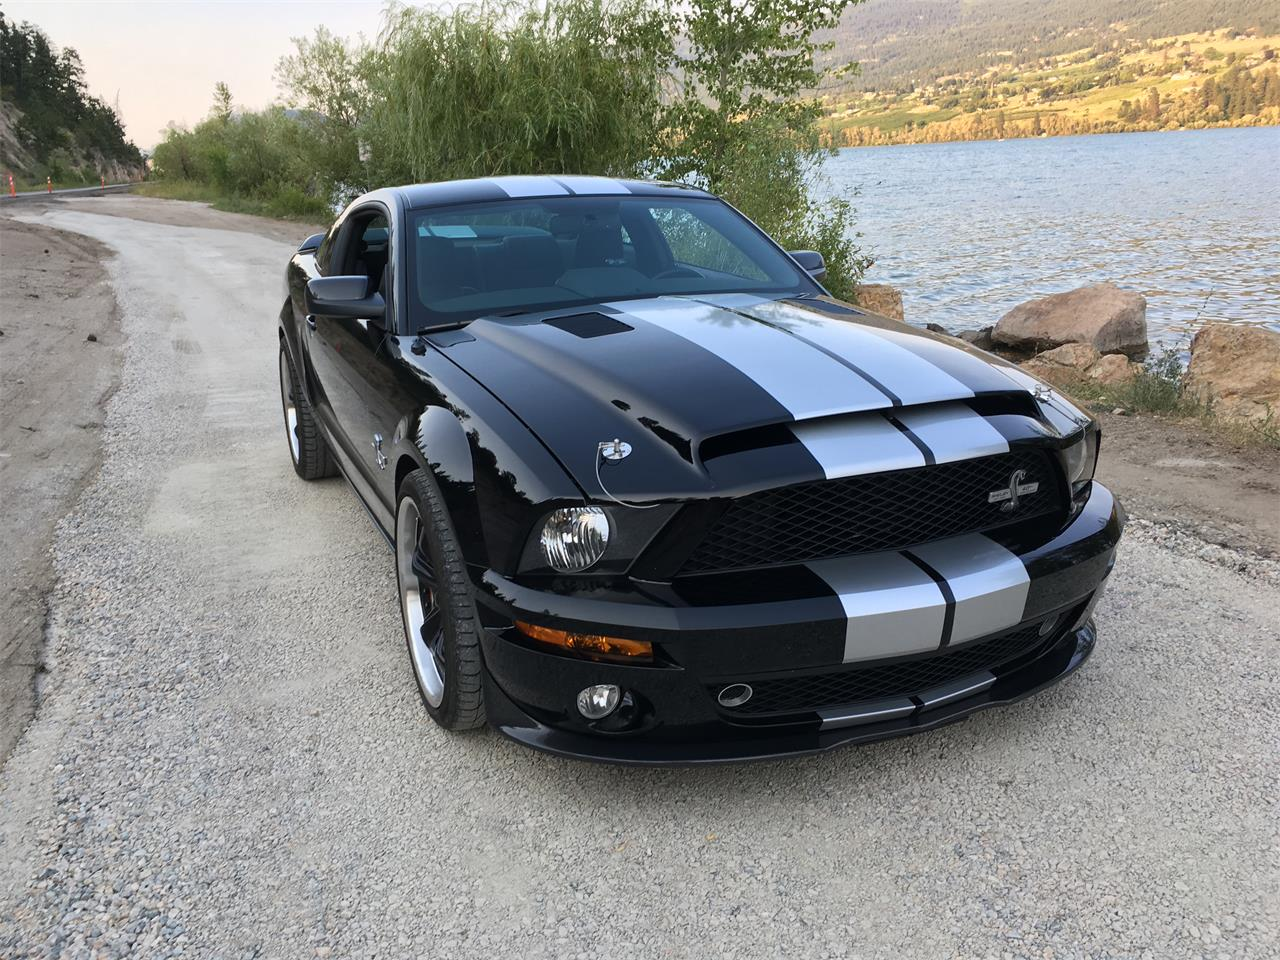 2007 Shelby Gt500 For Sale Classiccars Com Cc 920355